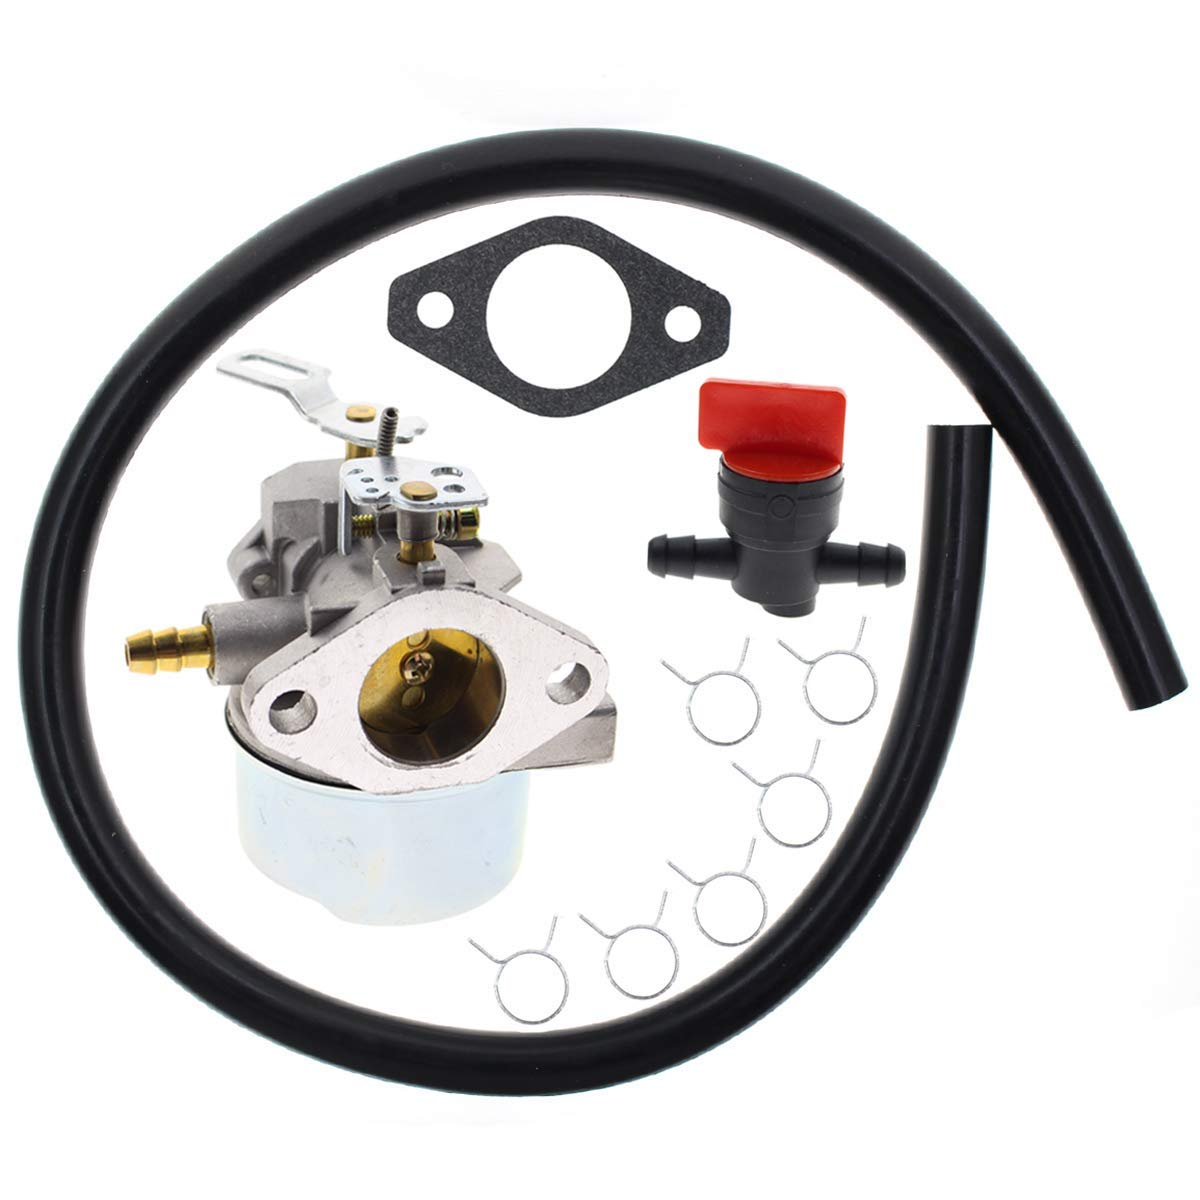 Cheap Tecumseh Engine Find Deals On Line At Alibabacom Wiring Harness Get Quotations Carbhub 640052 Carburetor For 640054 640349 Hmsk90 Lh318sa Lh358sa 8hp 9hp 10hp Hmsk80 Hmsk85